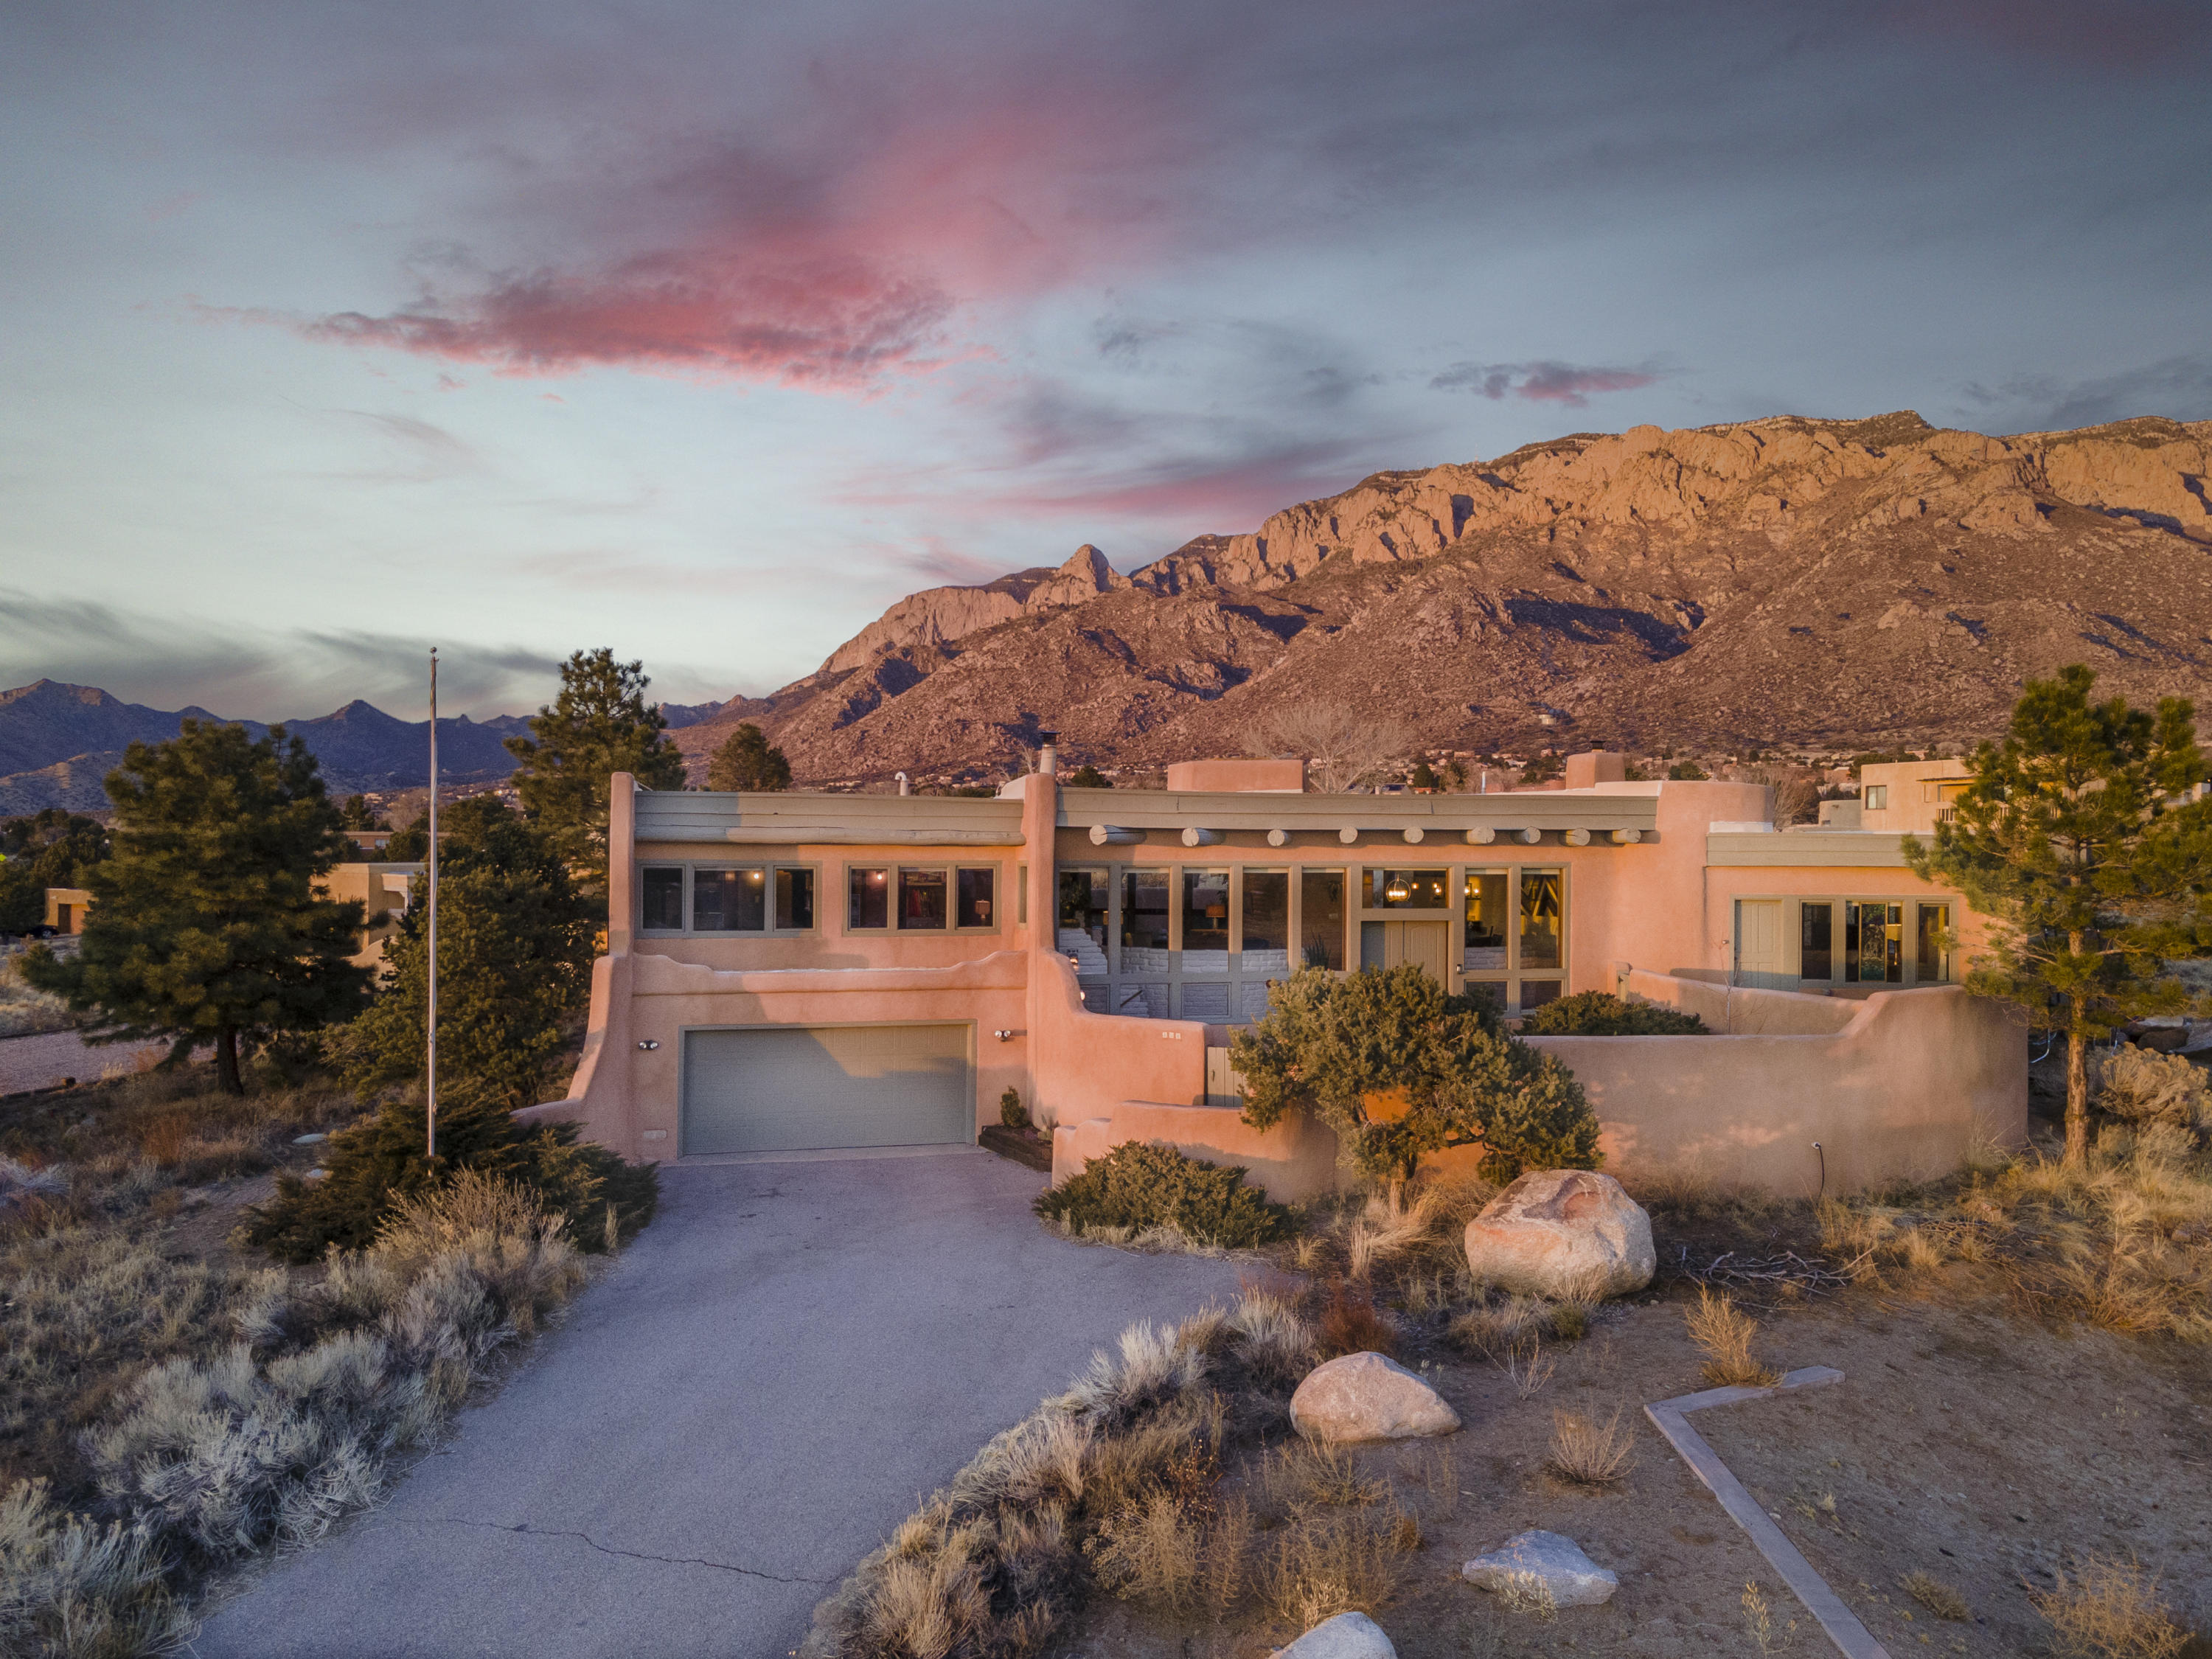 . Absolutely stunning Custom Adobe Sandia Heights Home built by Roybal situated on an elevated incredible lot (0.61 acres) that takes full advantage of the VIEWS of the Sandias, so close that you feel as though you can touch them. Versatile open floorplan offering 3 bedrooms and an office/study, and two baths which have been updated (2019&2020). Wood windows, Kiva fireplaces, brick flooring, newer carpet, tile, lightning & paint throughout. GORGEOUS Kitchen, which has been totally remodeled (2018) to include new cabinets, backsplash, stove, microwave, granite countertops, and bar that opens to the eating area. Spacious Owner's Suite with its own Kiva fireplace, private entrance to the large deck with stunning Views of the City & Sandias.